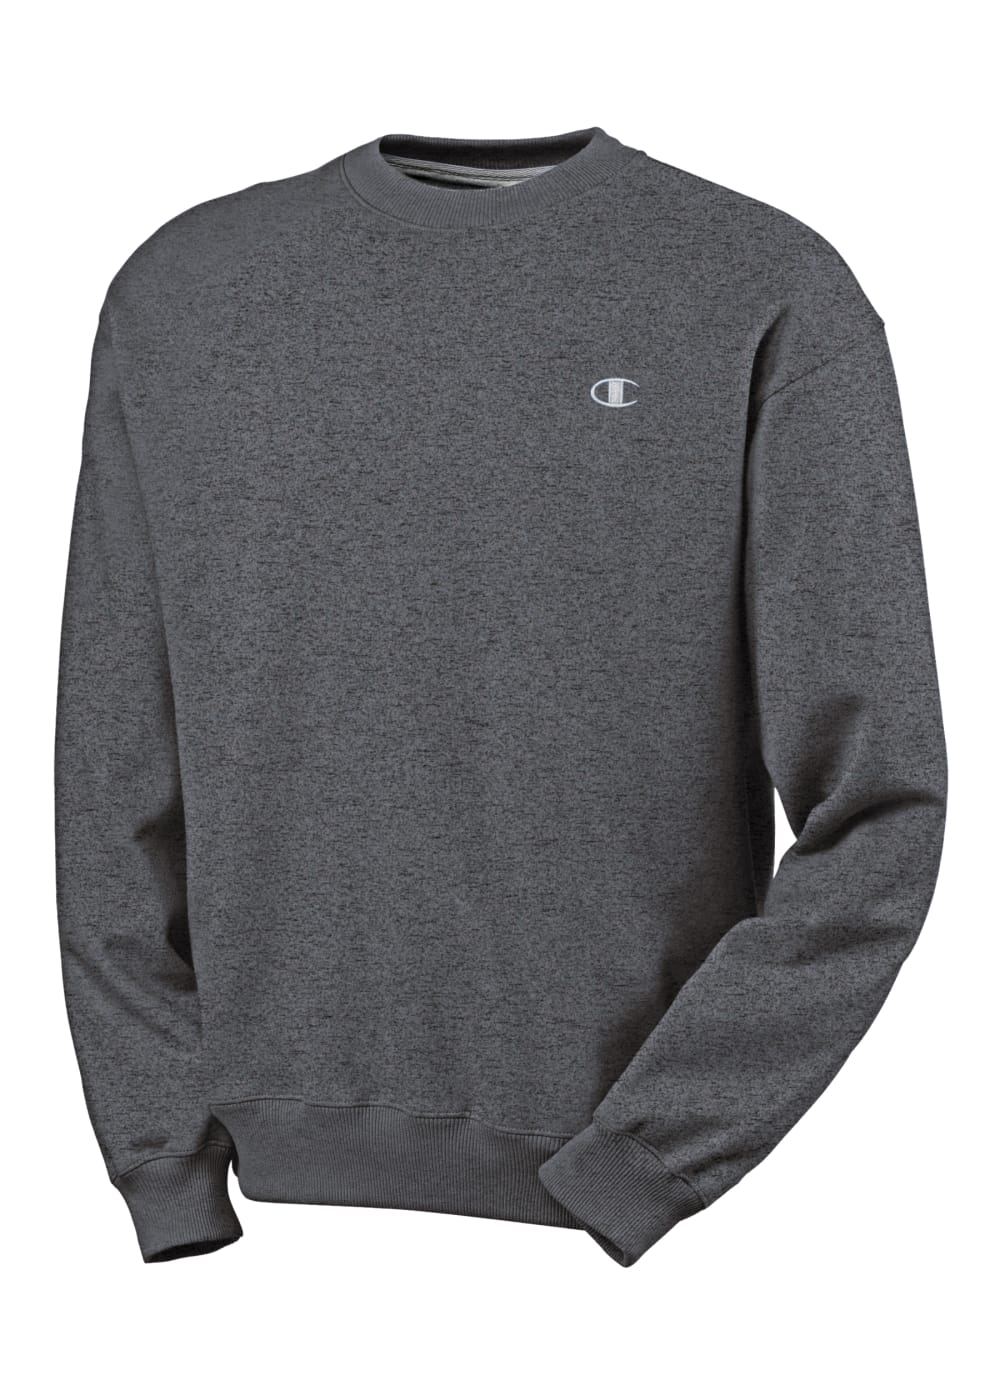 CHAMPION Men's Eco Fleece Crew Neck Sweatshirt - GRANITE HEATHER-G61